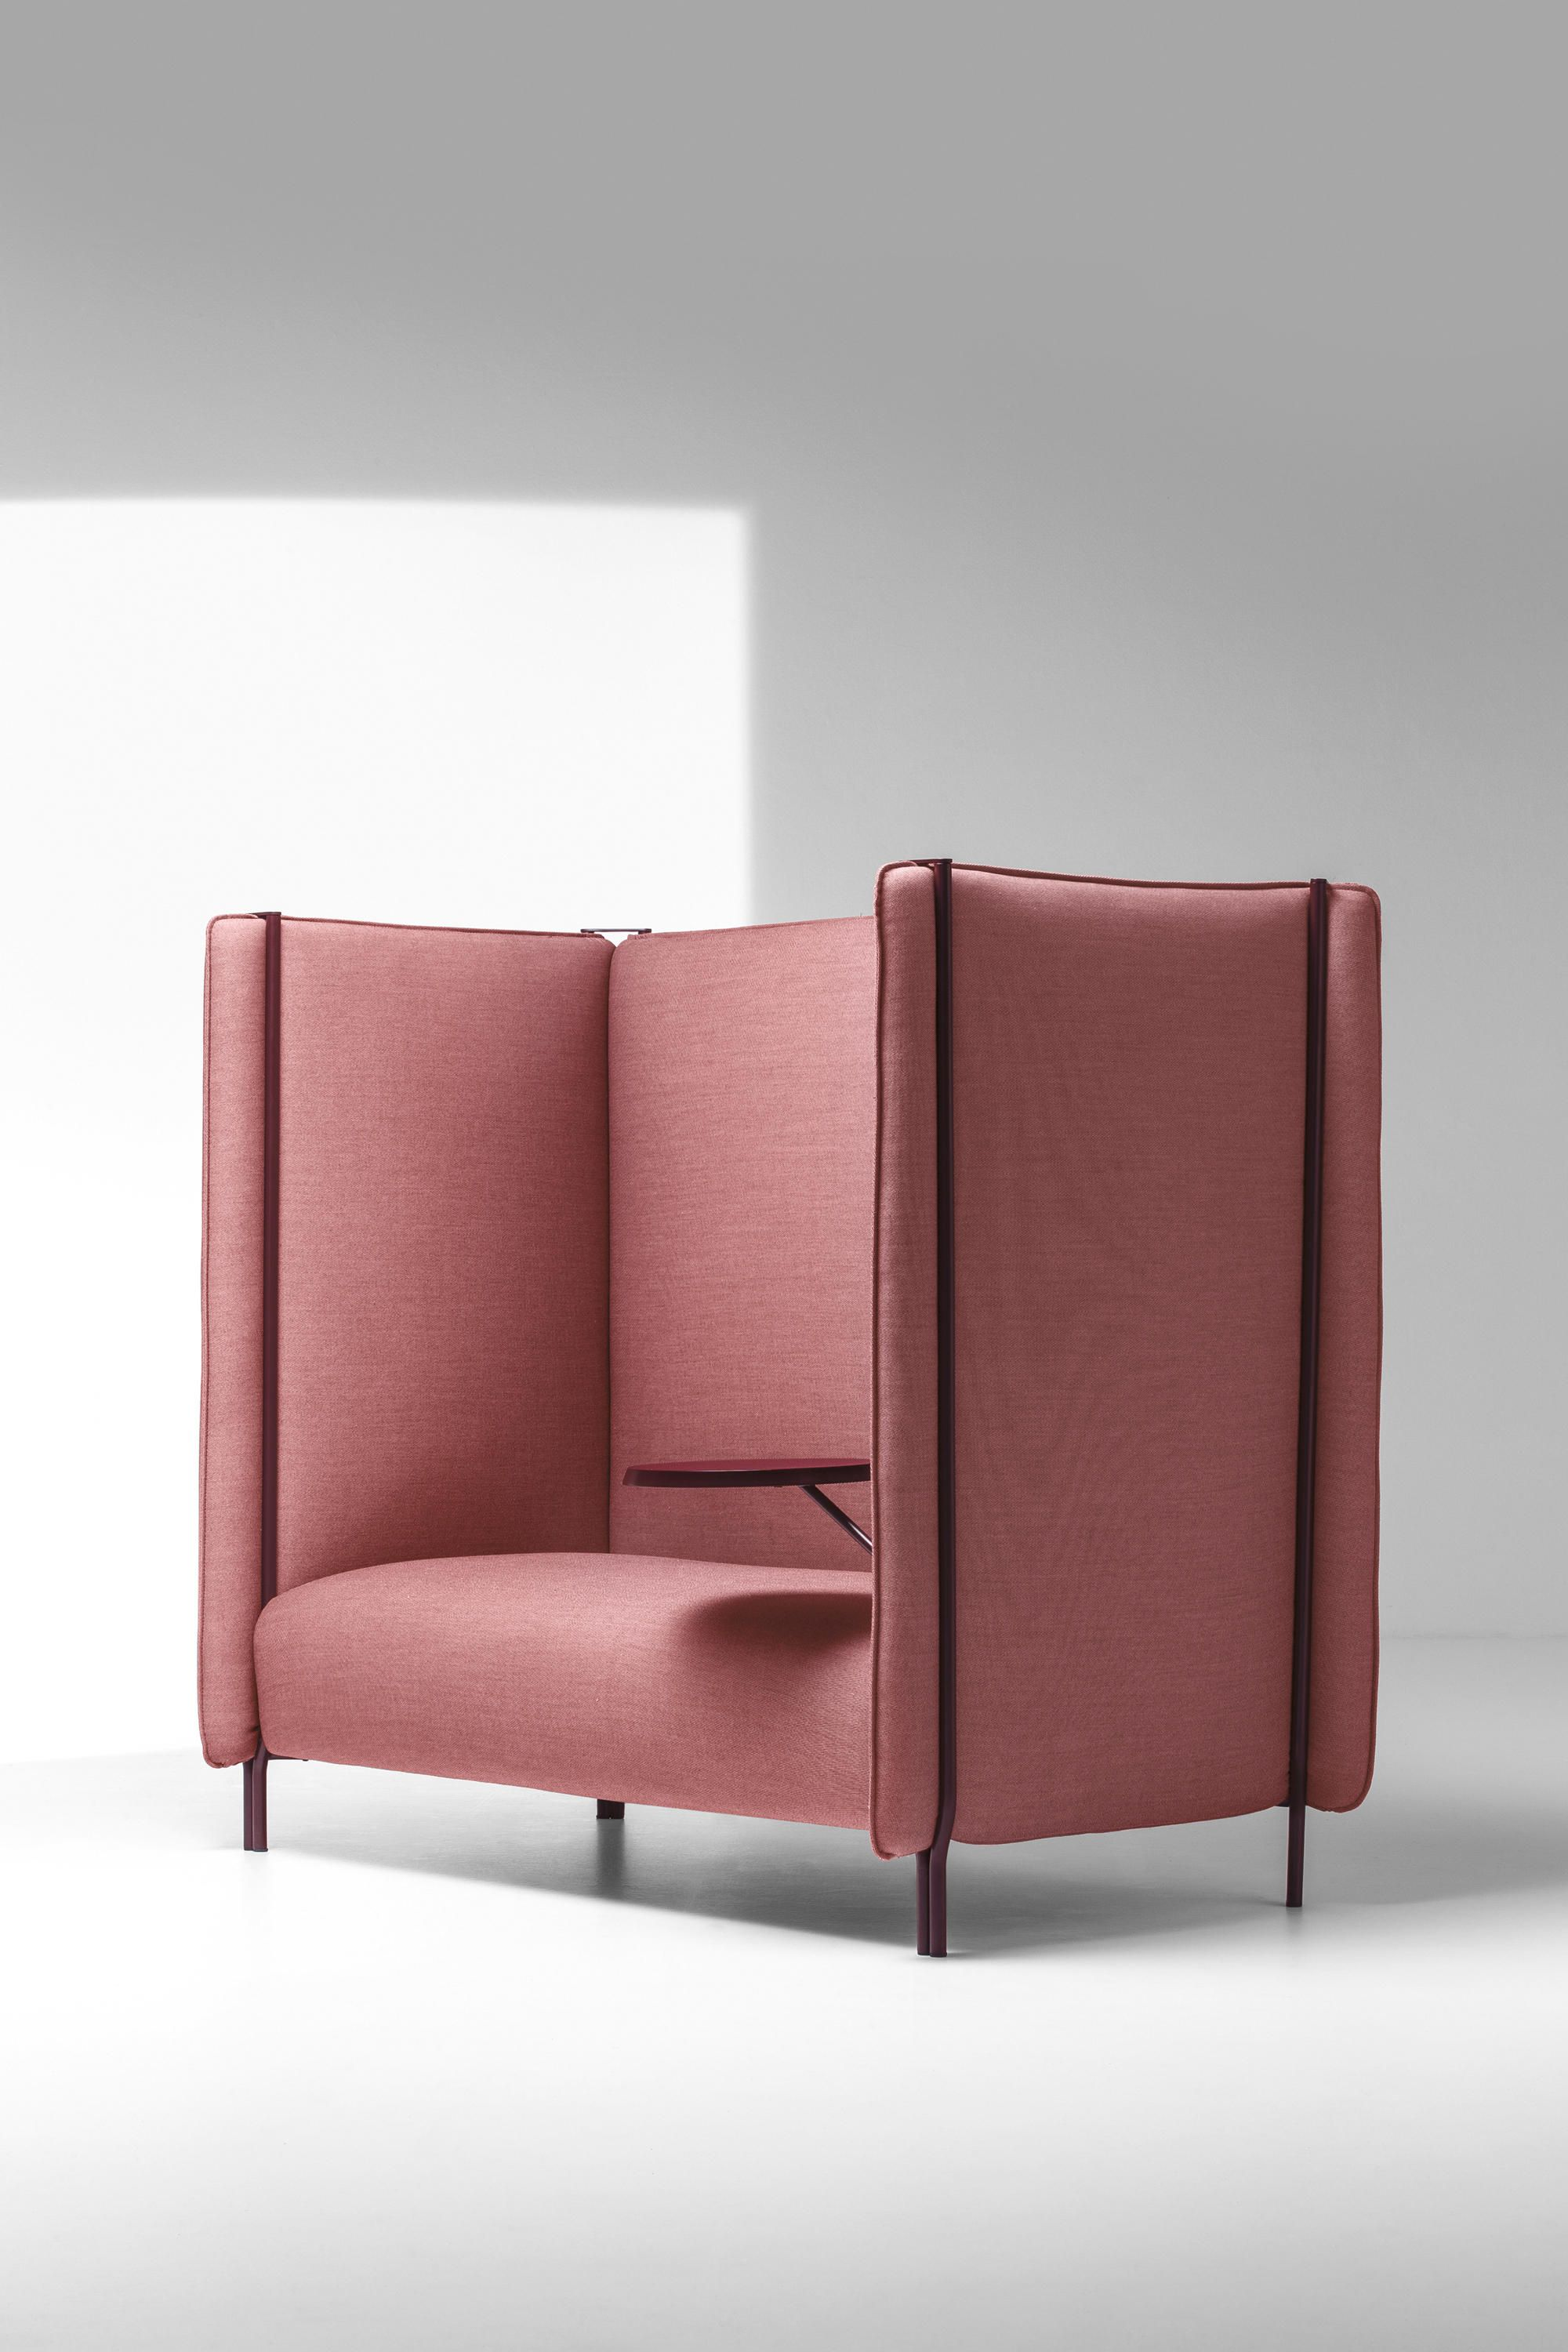 Pinch Designer Sofas From La Cividina All Information High Resolution Images Cads Catalogues Contact I Furniture Sofa Furniture Upholstered Seating